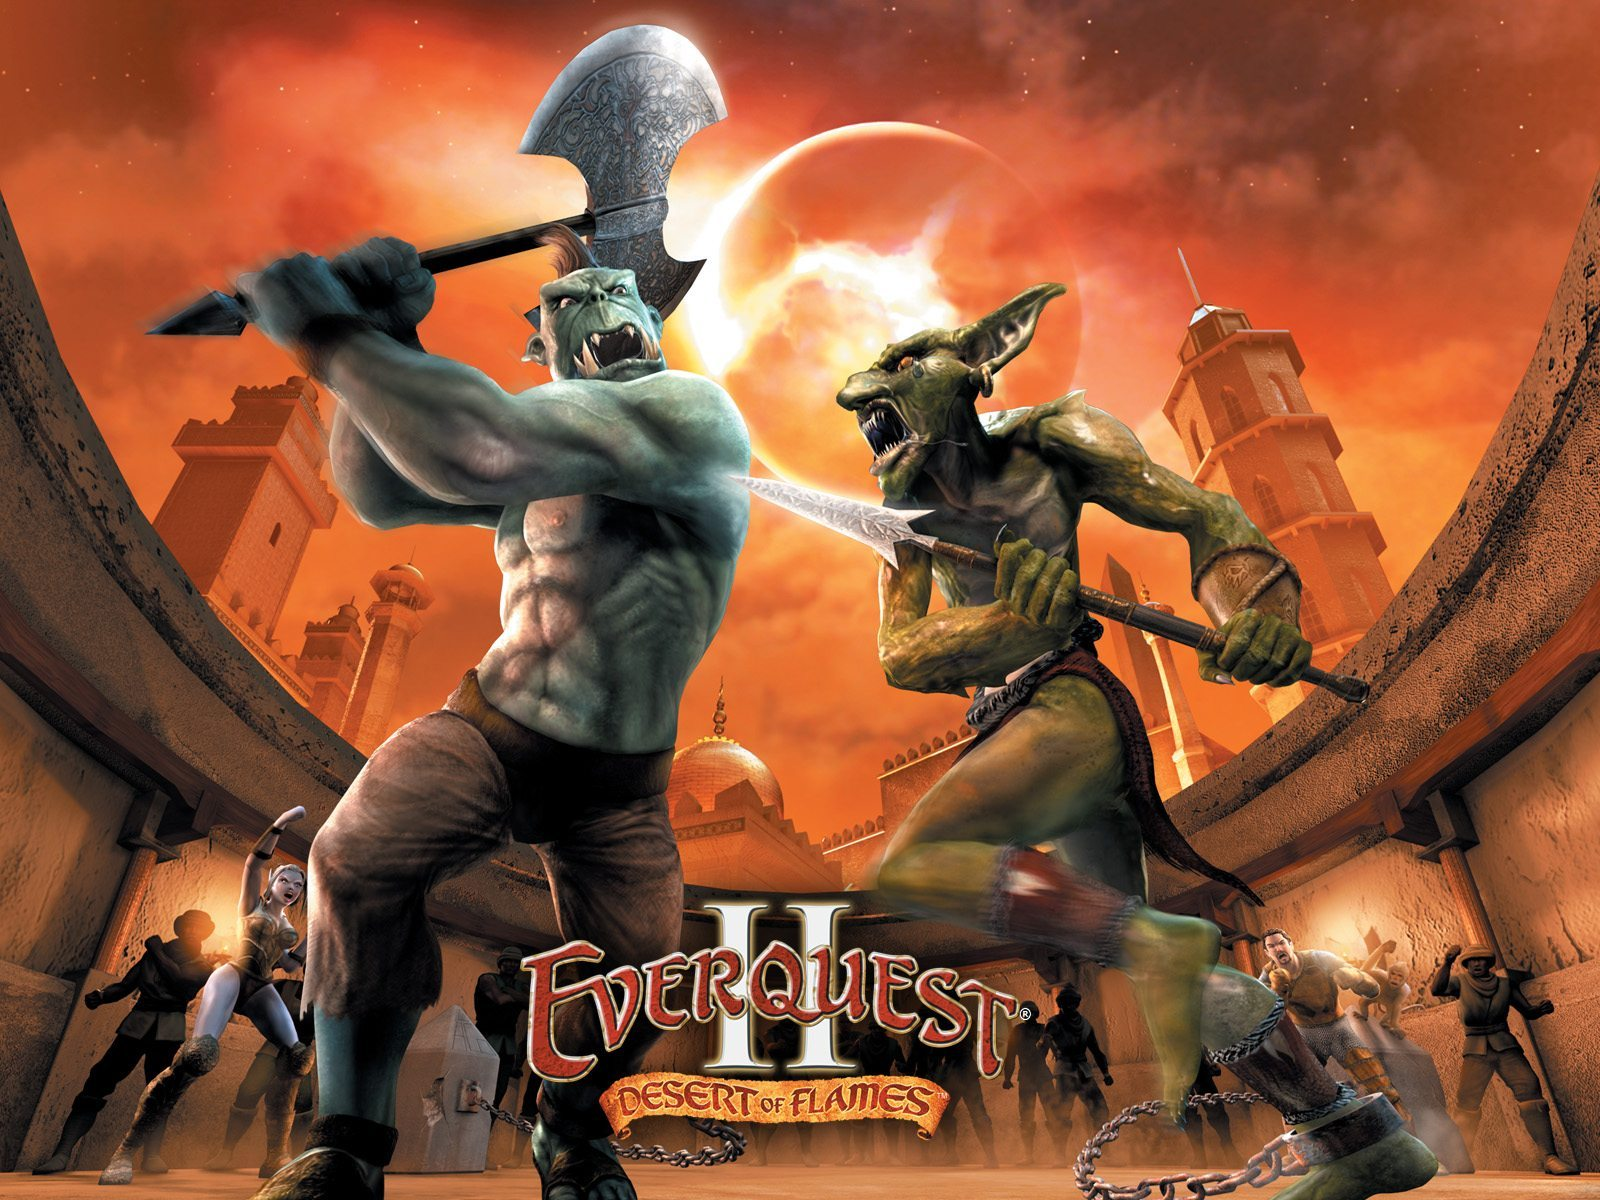 Everquest 2: Polls for the Upcoming Expansion Vote are Now Open